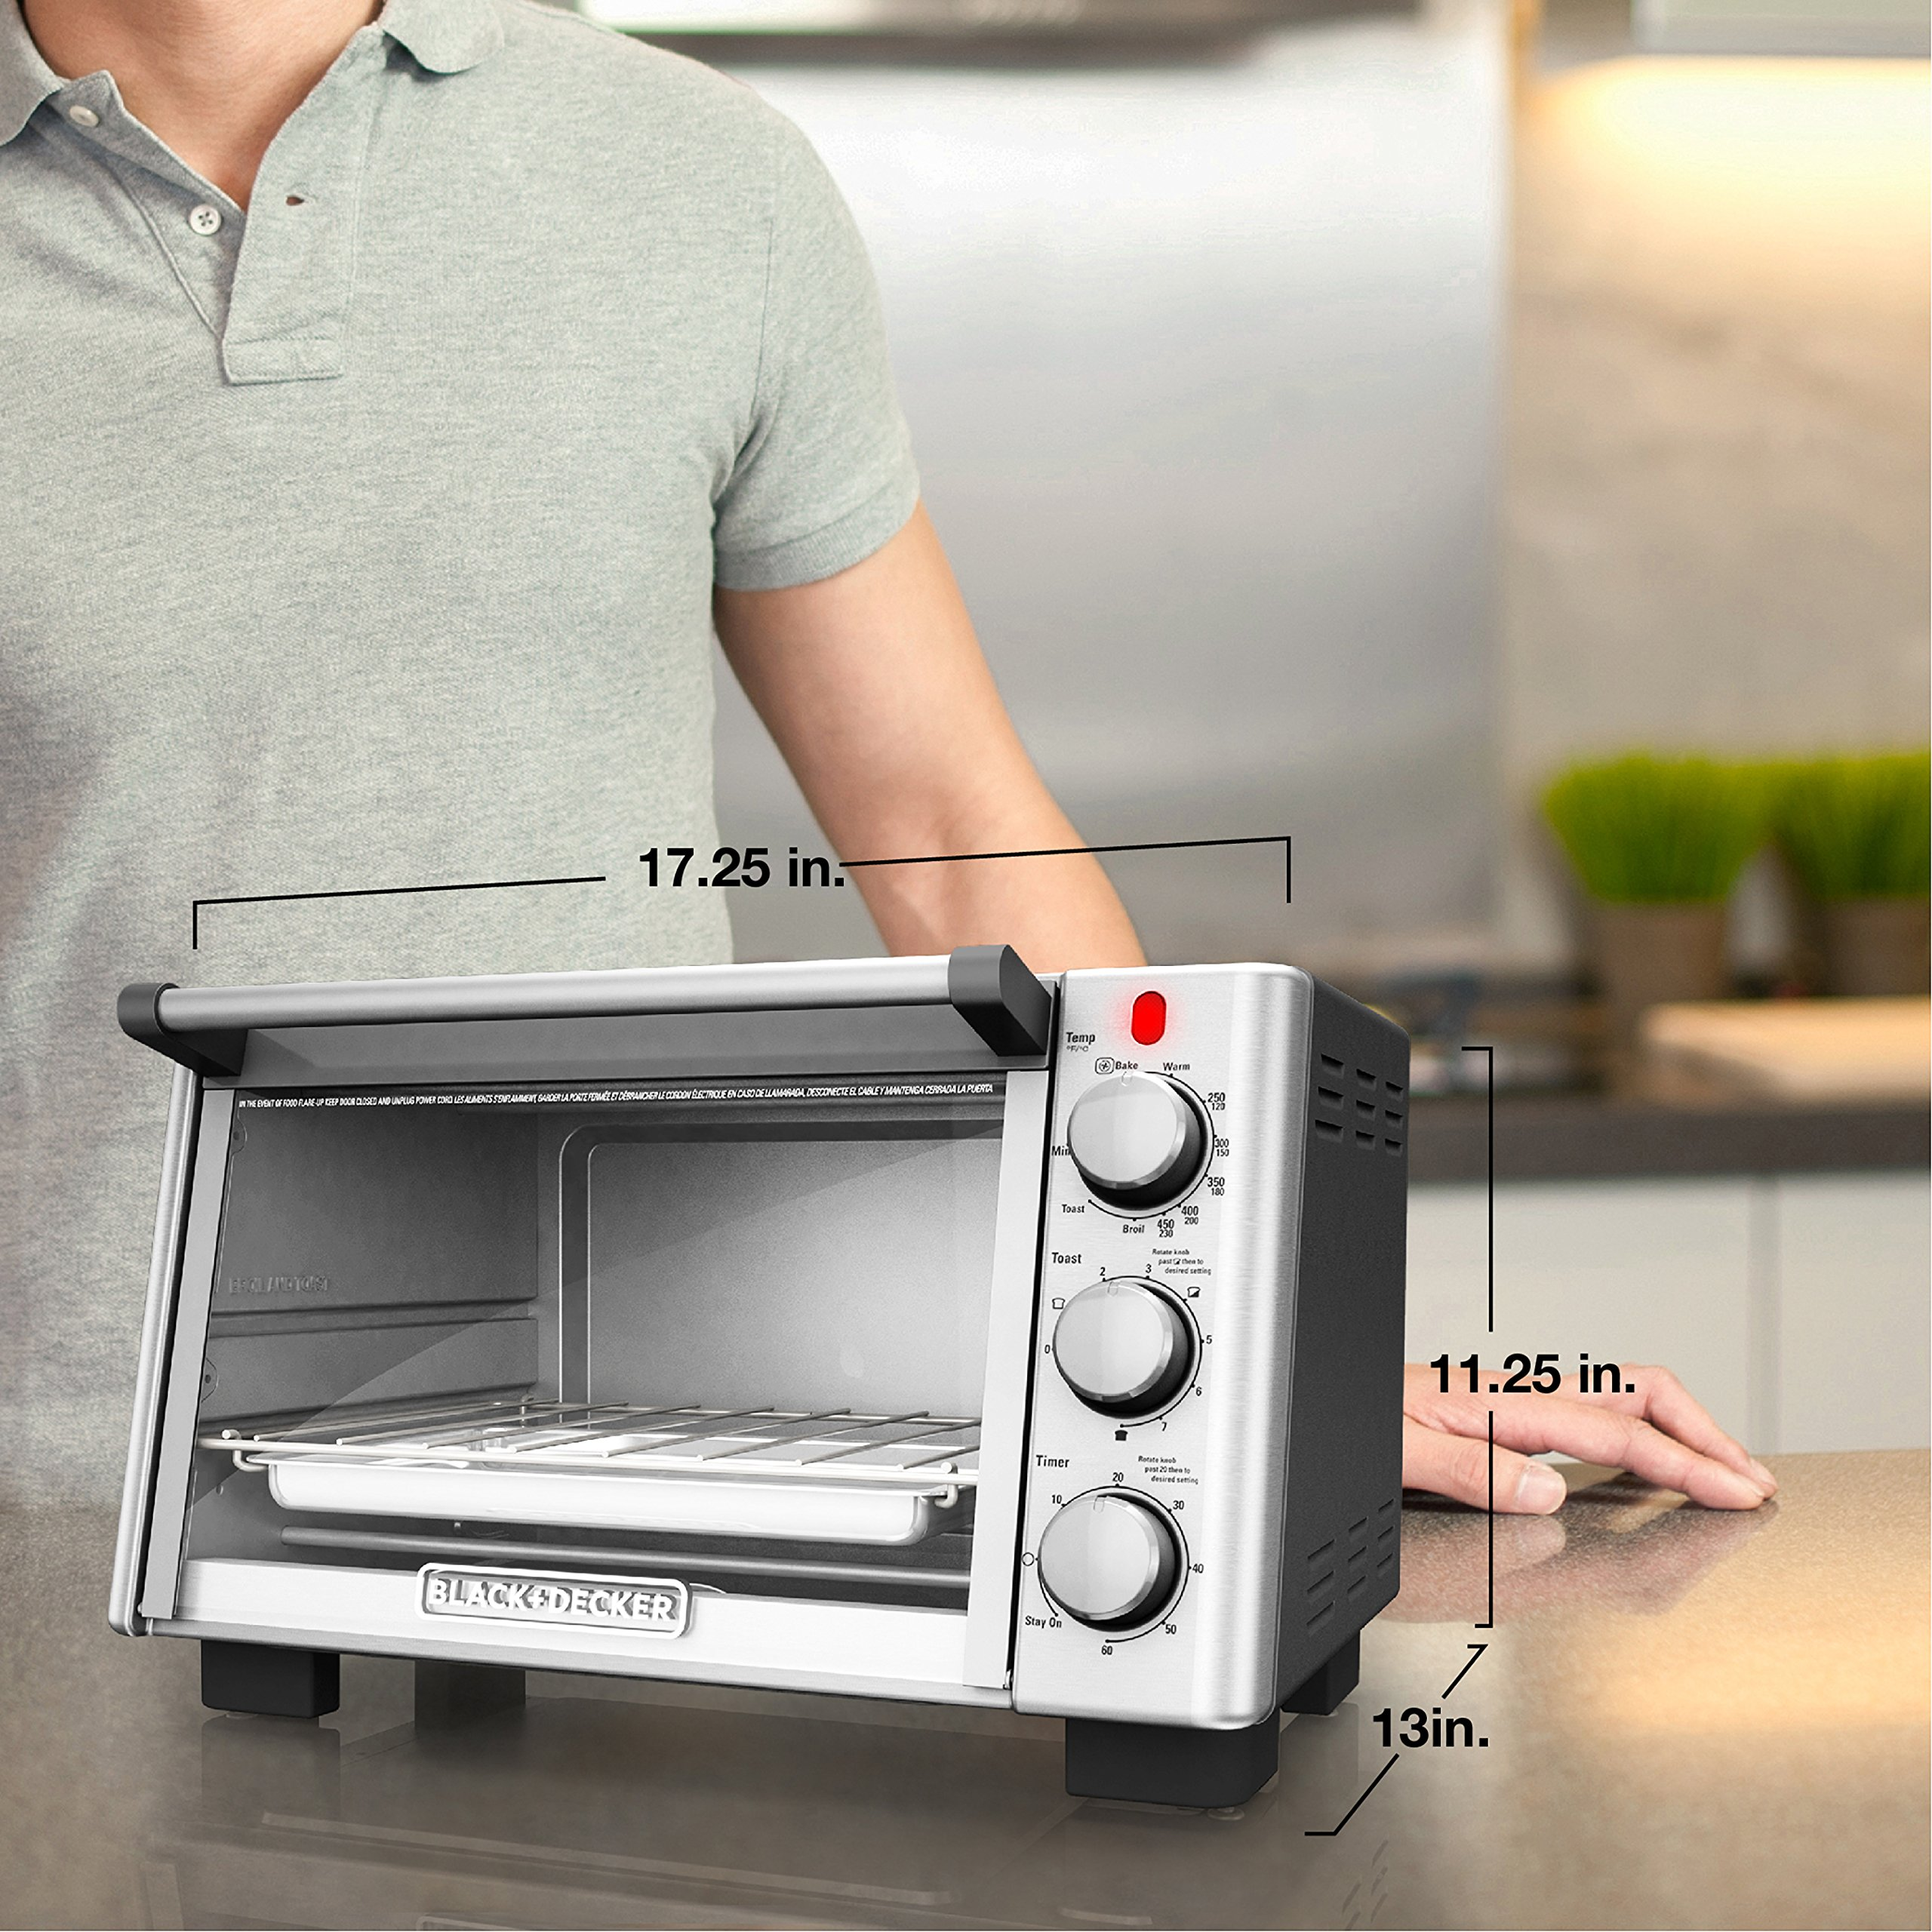 BLACK+DECKER 6-Slice Convection Countertop Toaster Oven, Stainless Steel/Black, TO2050S by BLACK+DECKER (Image #7)